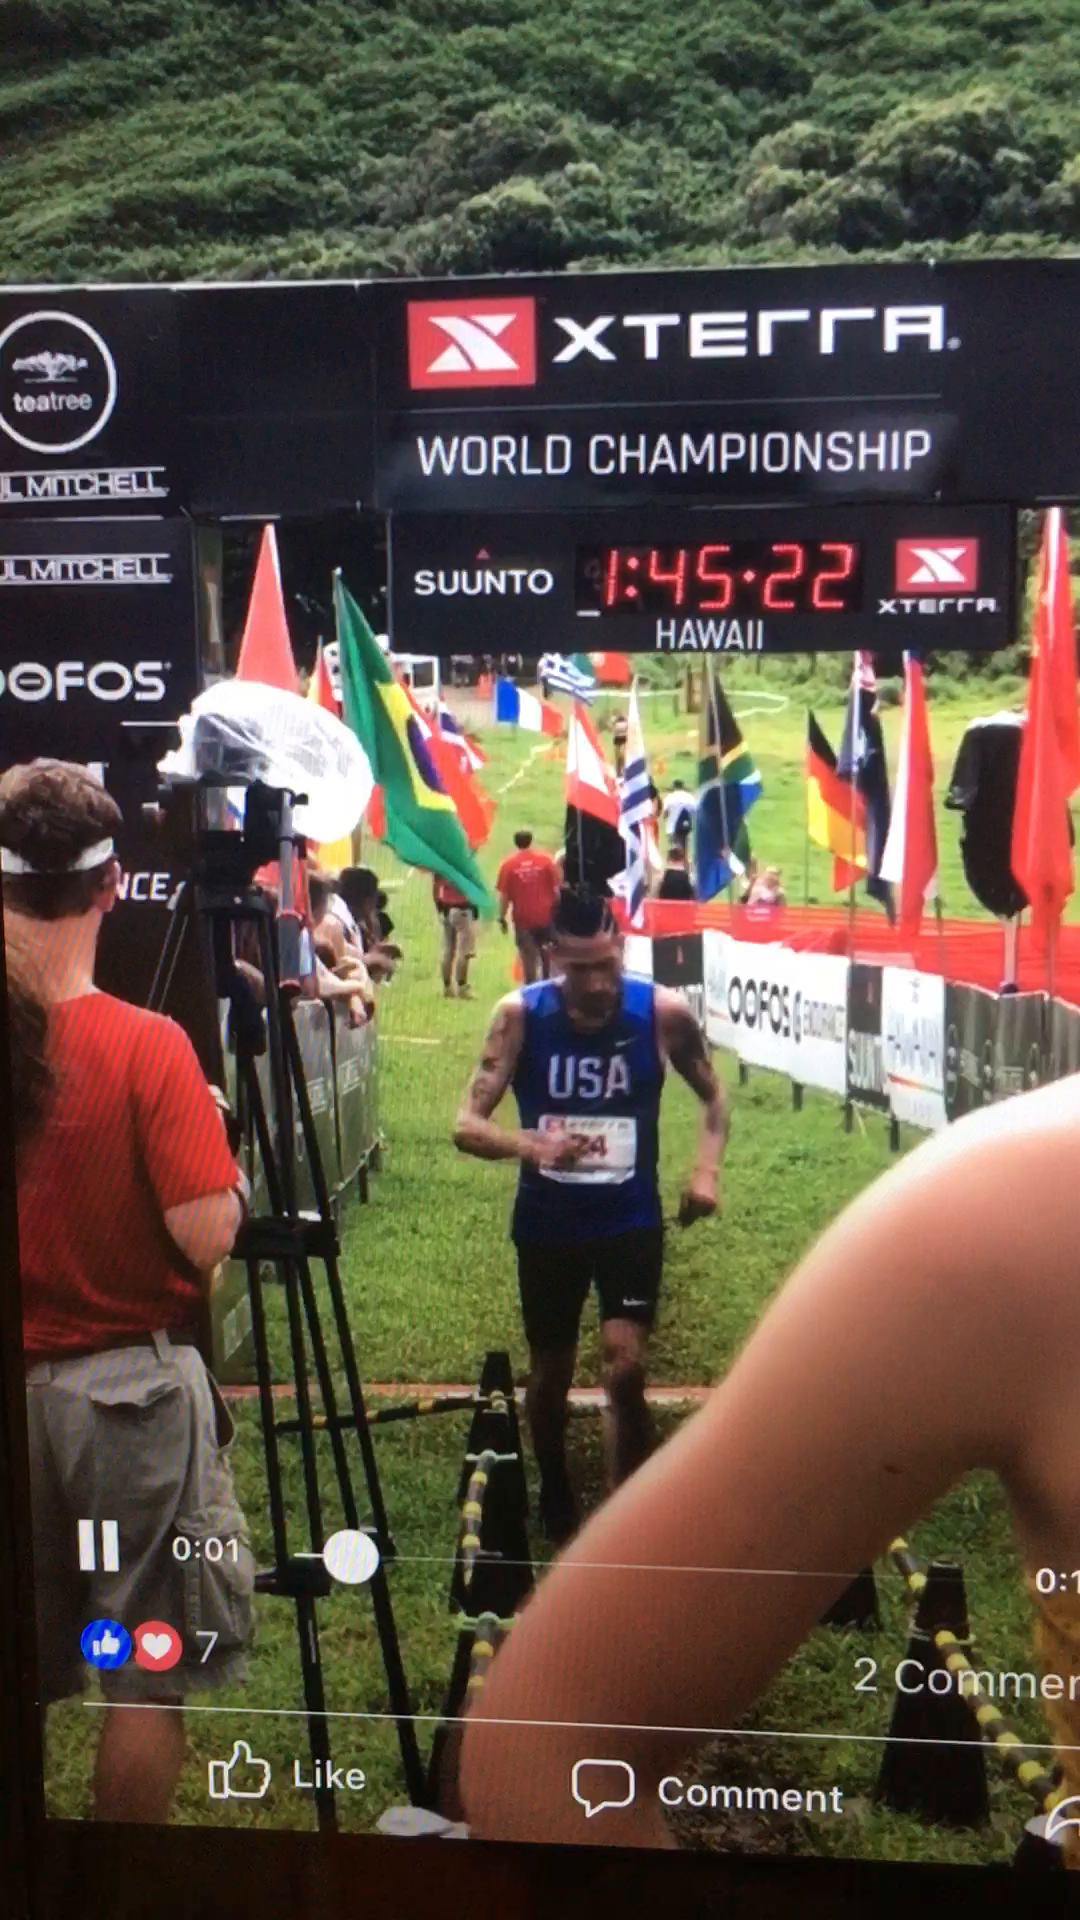 XTERRA TRAIL WORLD CHAMPIONSHIP FINISH CLIP- Kualoa Ranch- Oahu- Hawaii